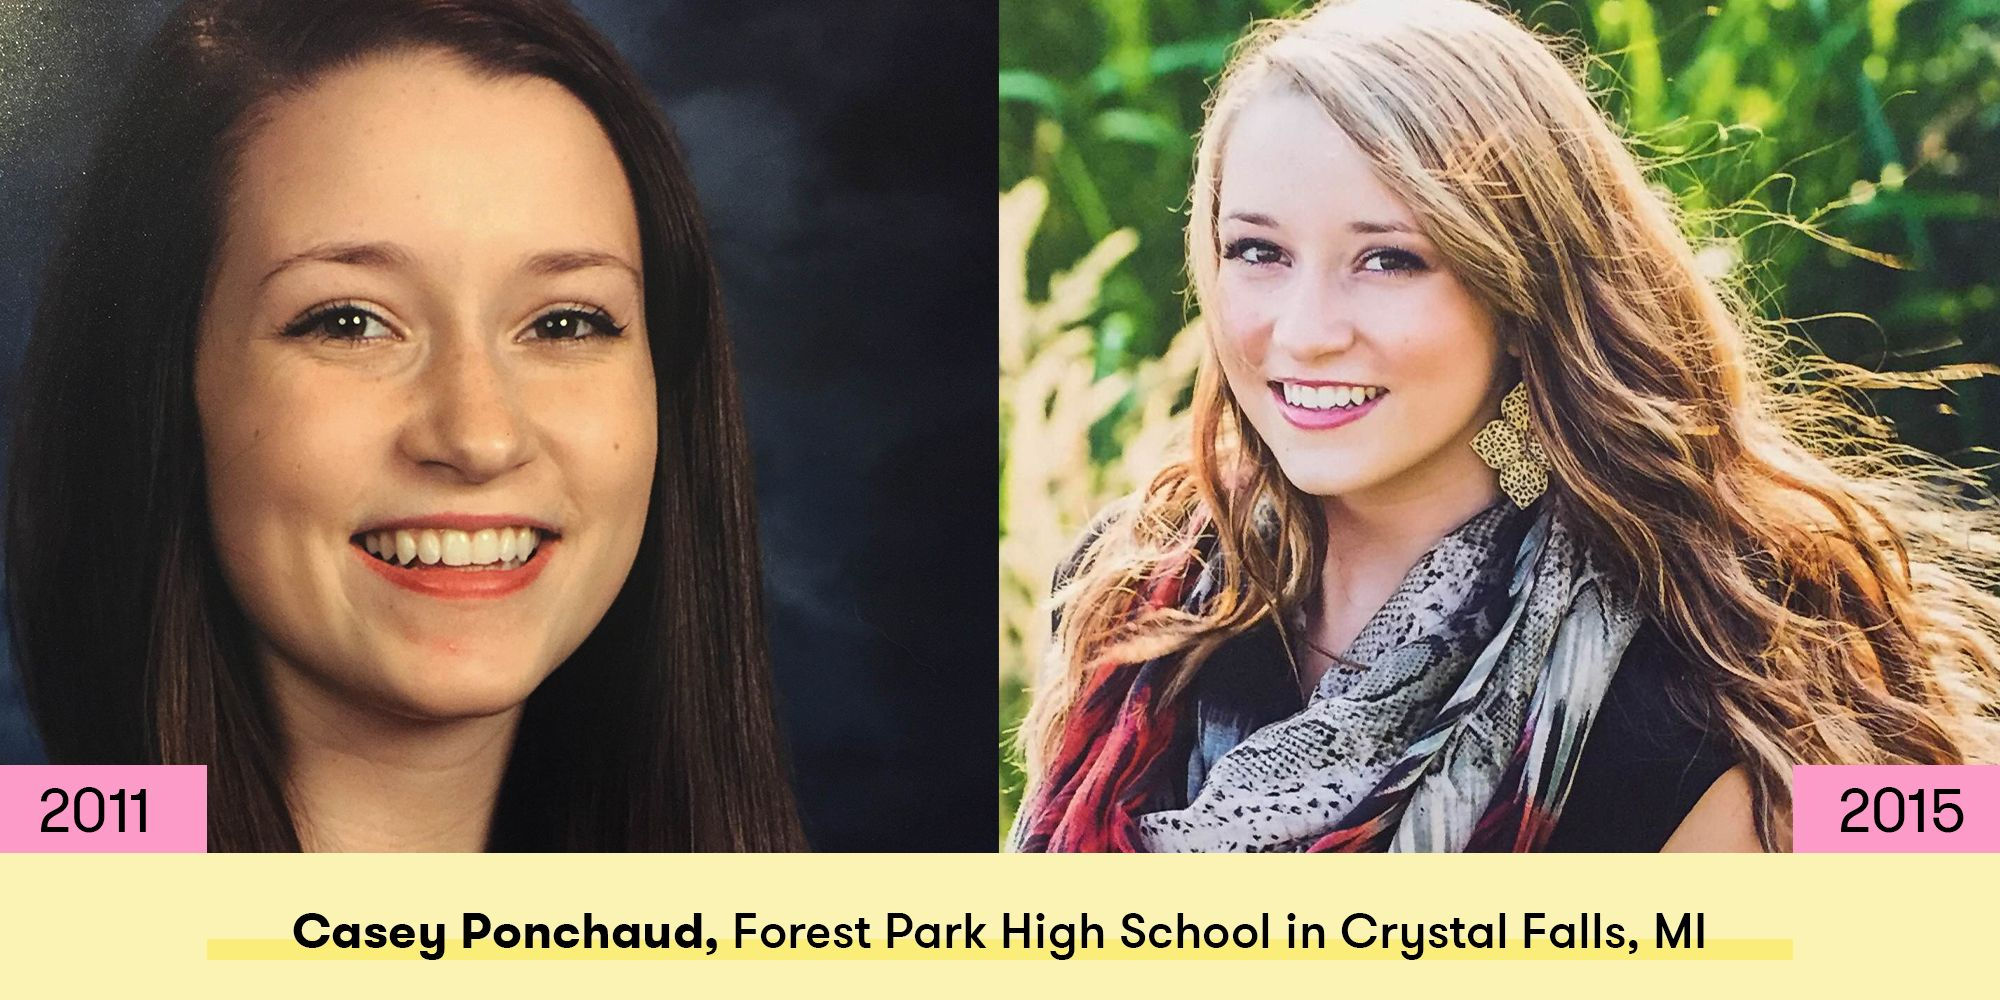 See How 15 Girls Changed Between Freshman And Senior Year Of High School